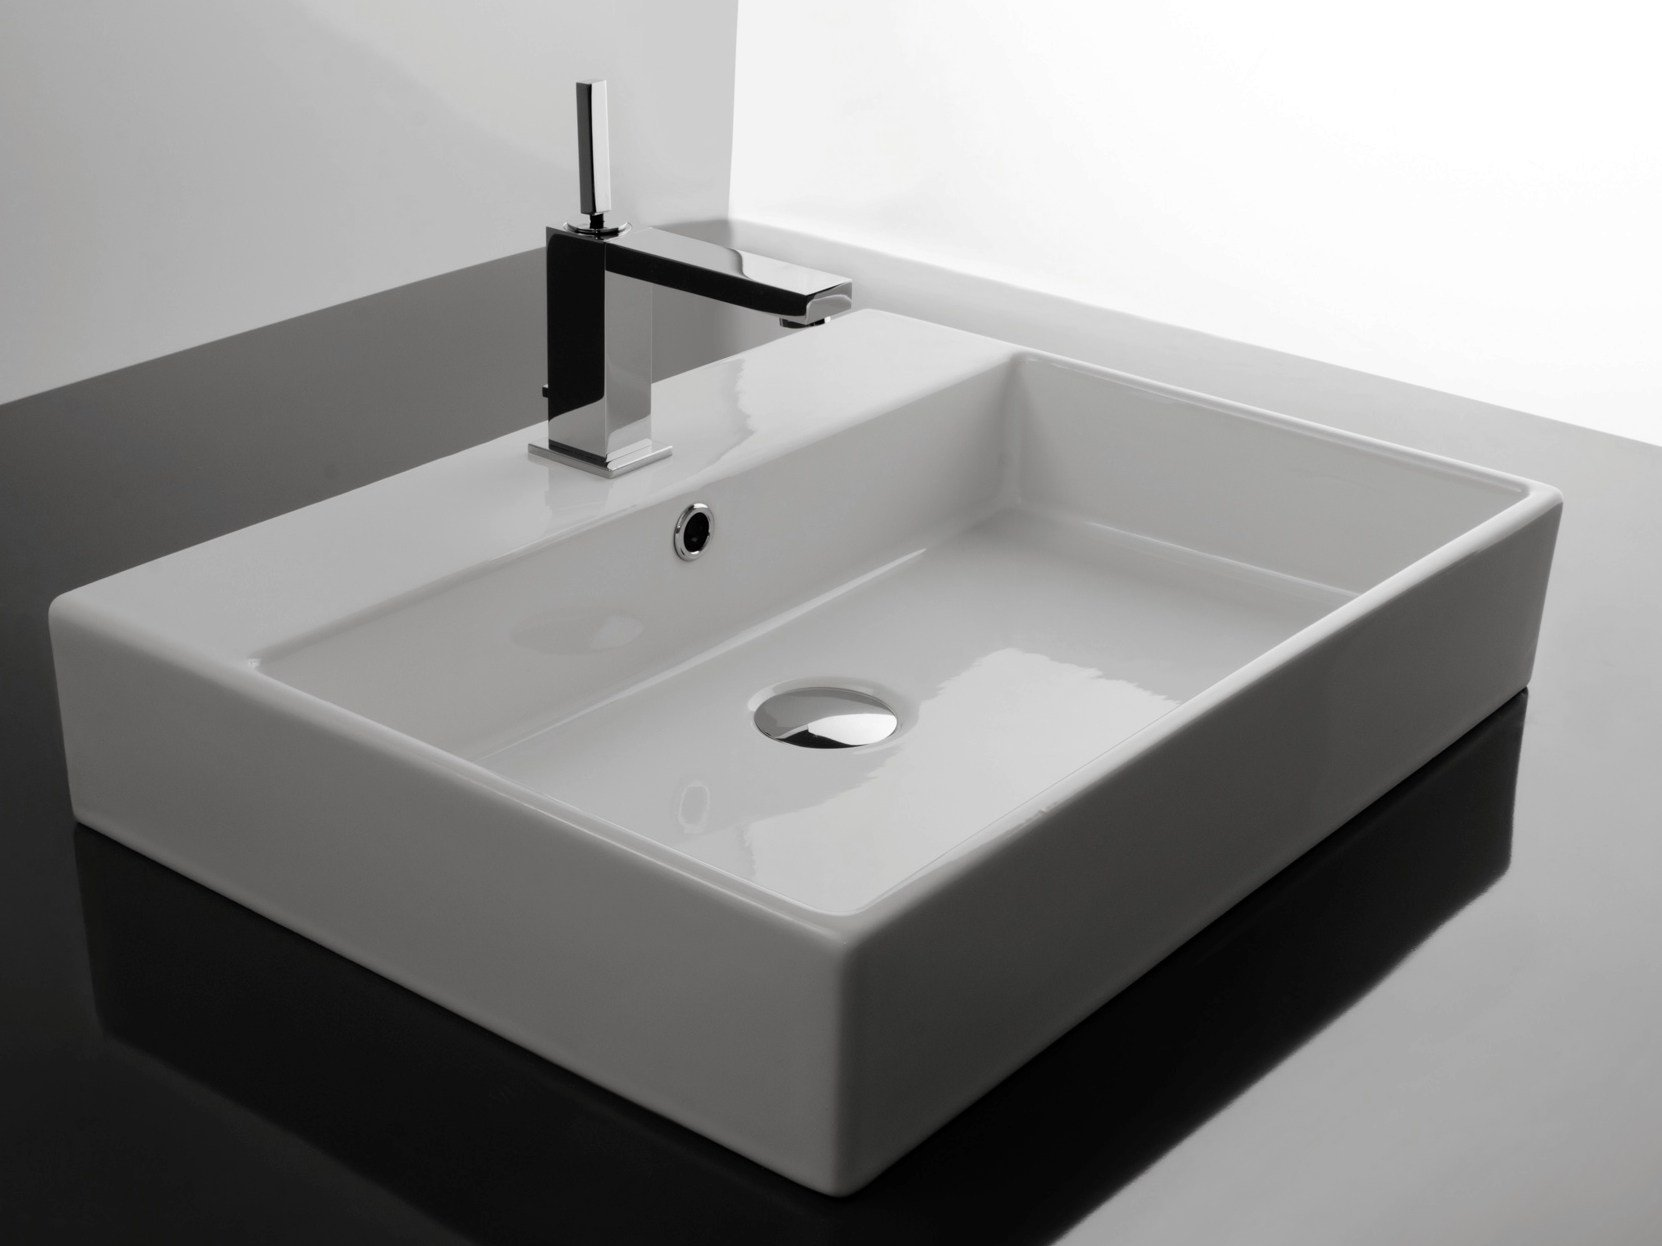 6 raisons ou non d installer une vasque poser for Lavabo salle de bain rectangulaire